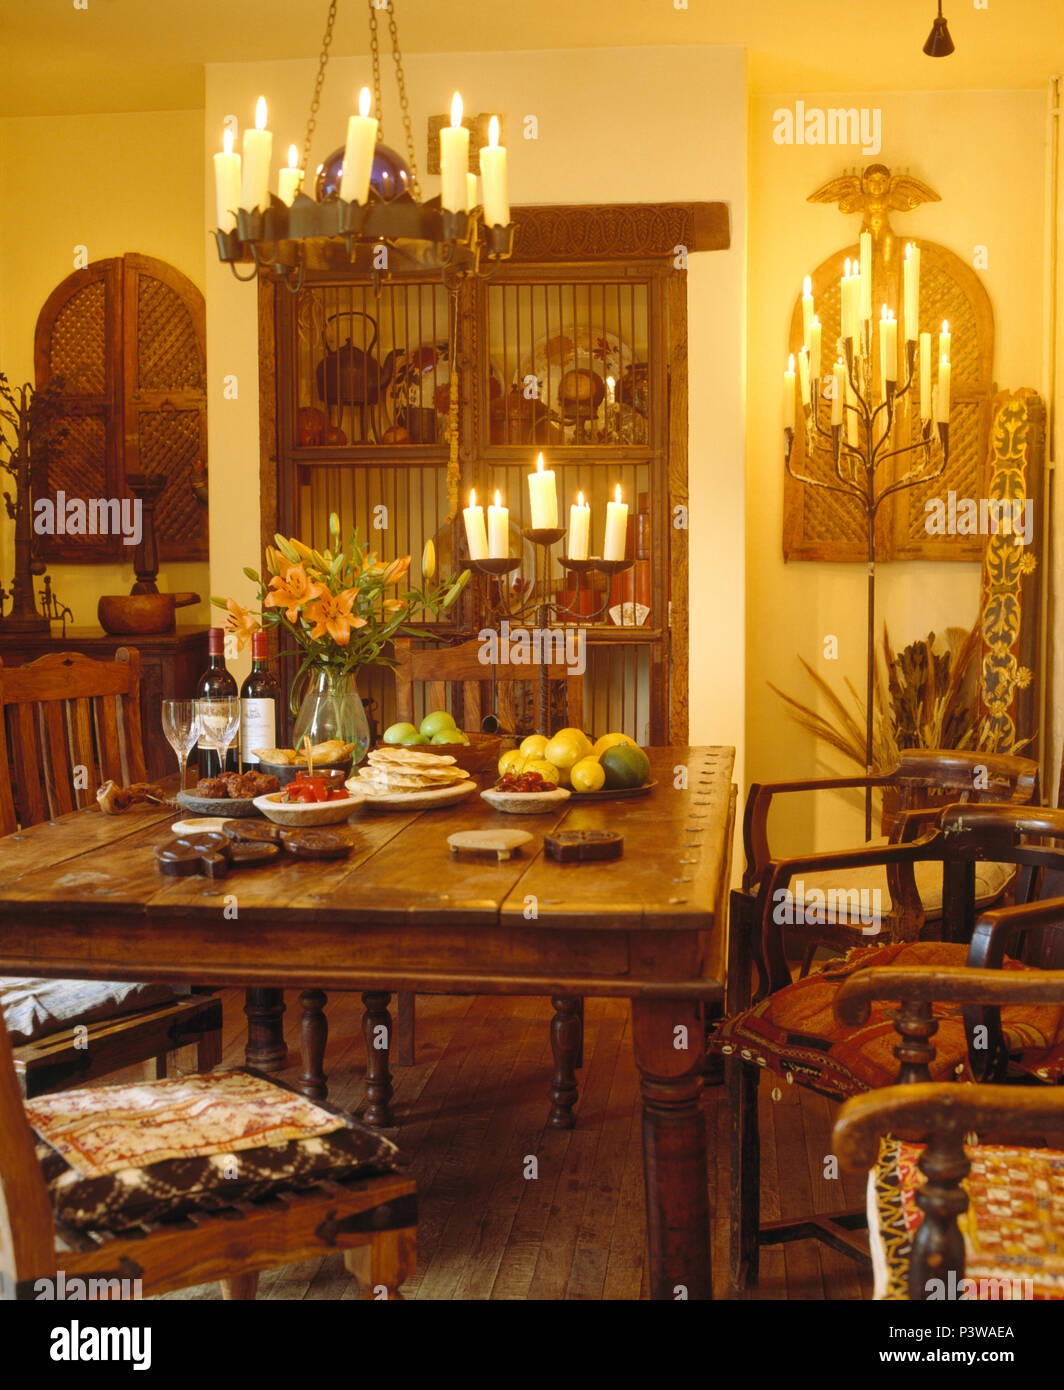 Surprising Lighted Candles In Chandelier Above Table In Country Dining Beutiful Home Inspiration Xortanetmahrainfo